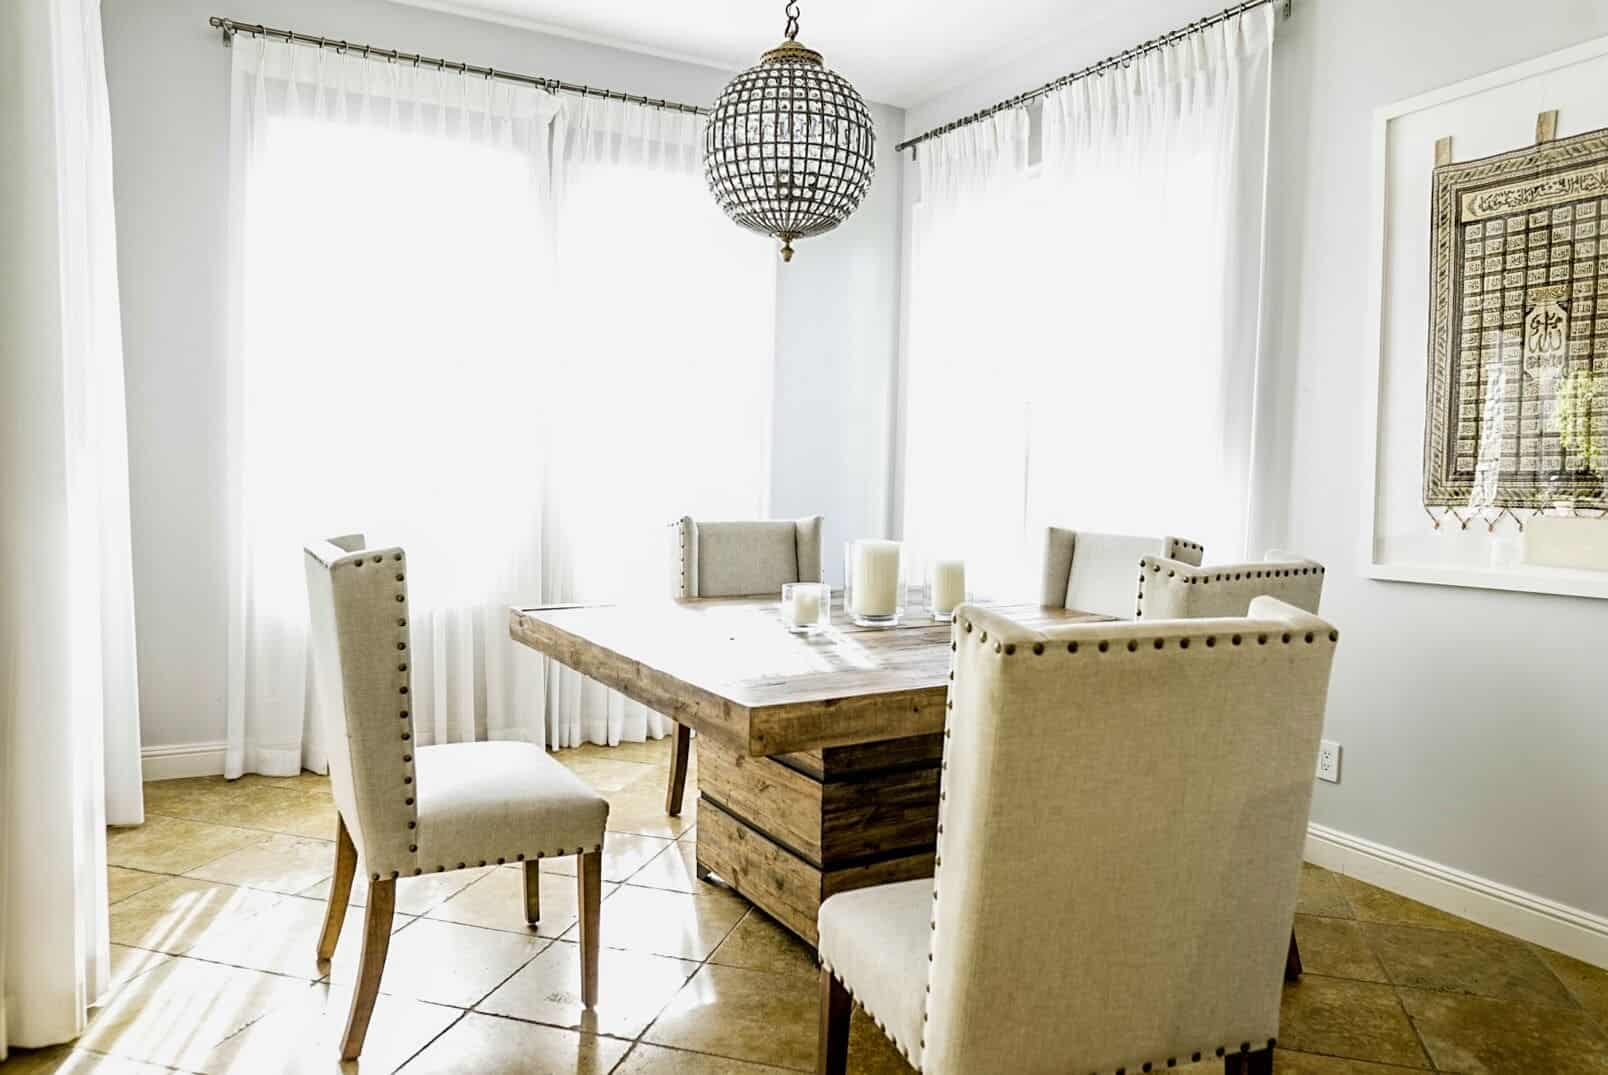 There's a dining nook as well, featuring a square rustic table and classy white chairs. Images courtesy of Toptenrealestatedeals.com.